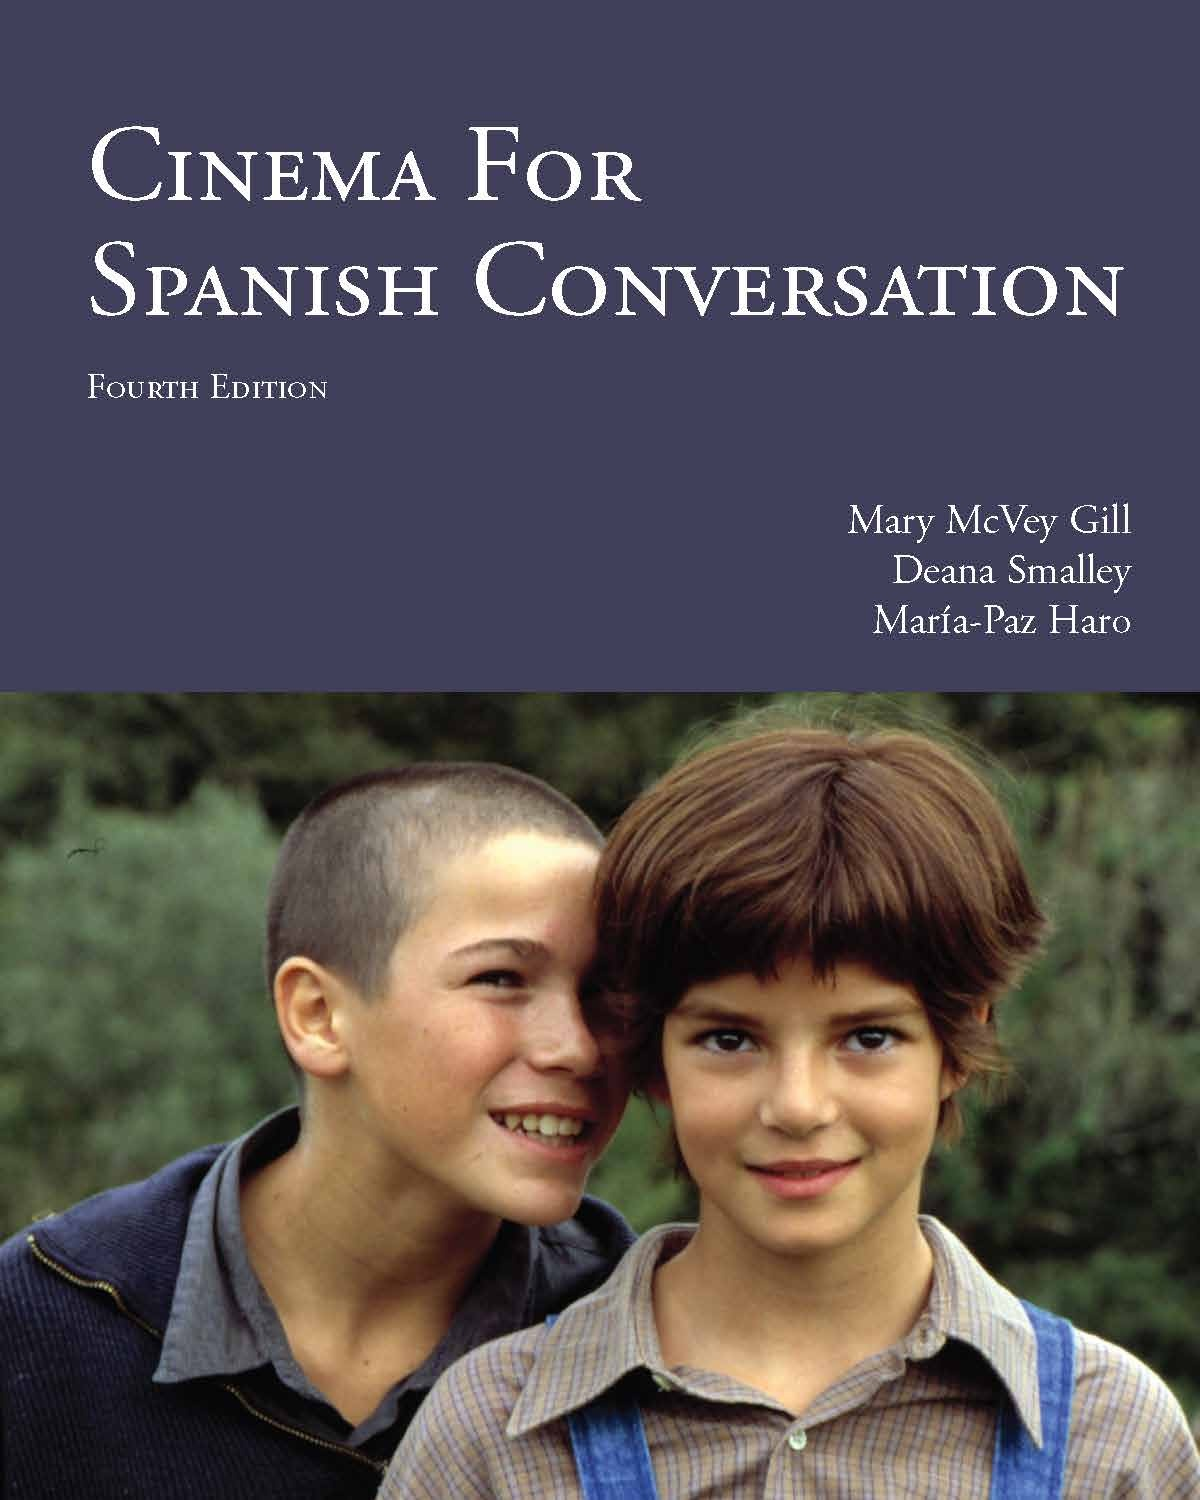 Cinema for Spanish Conversation 4th Edition 180 Day Access